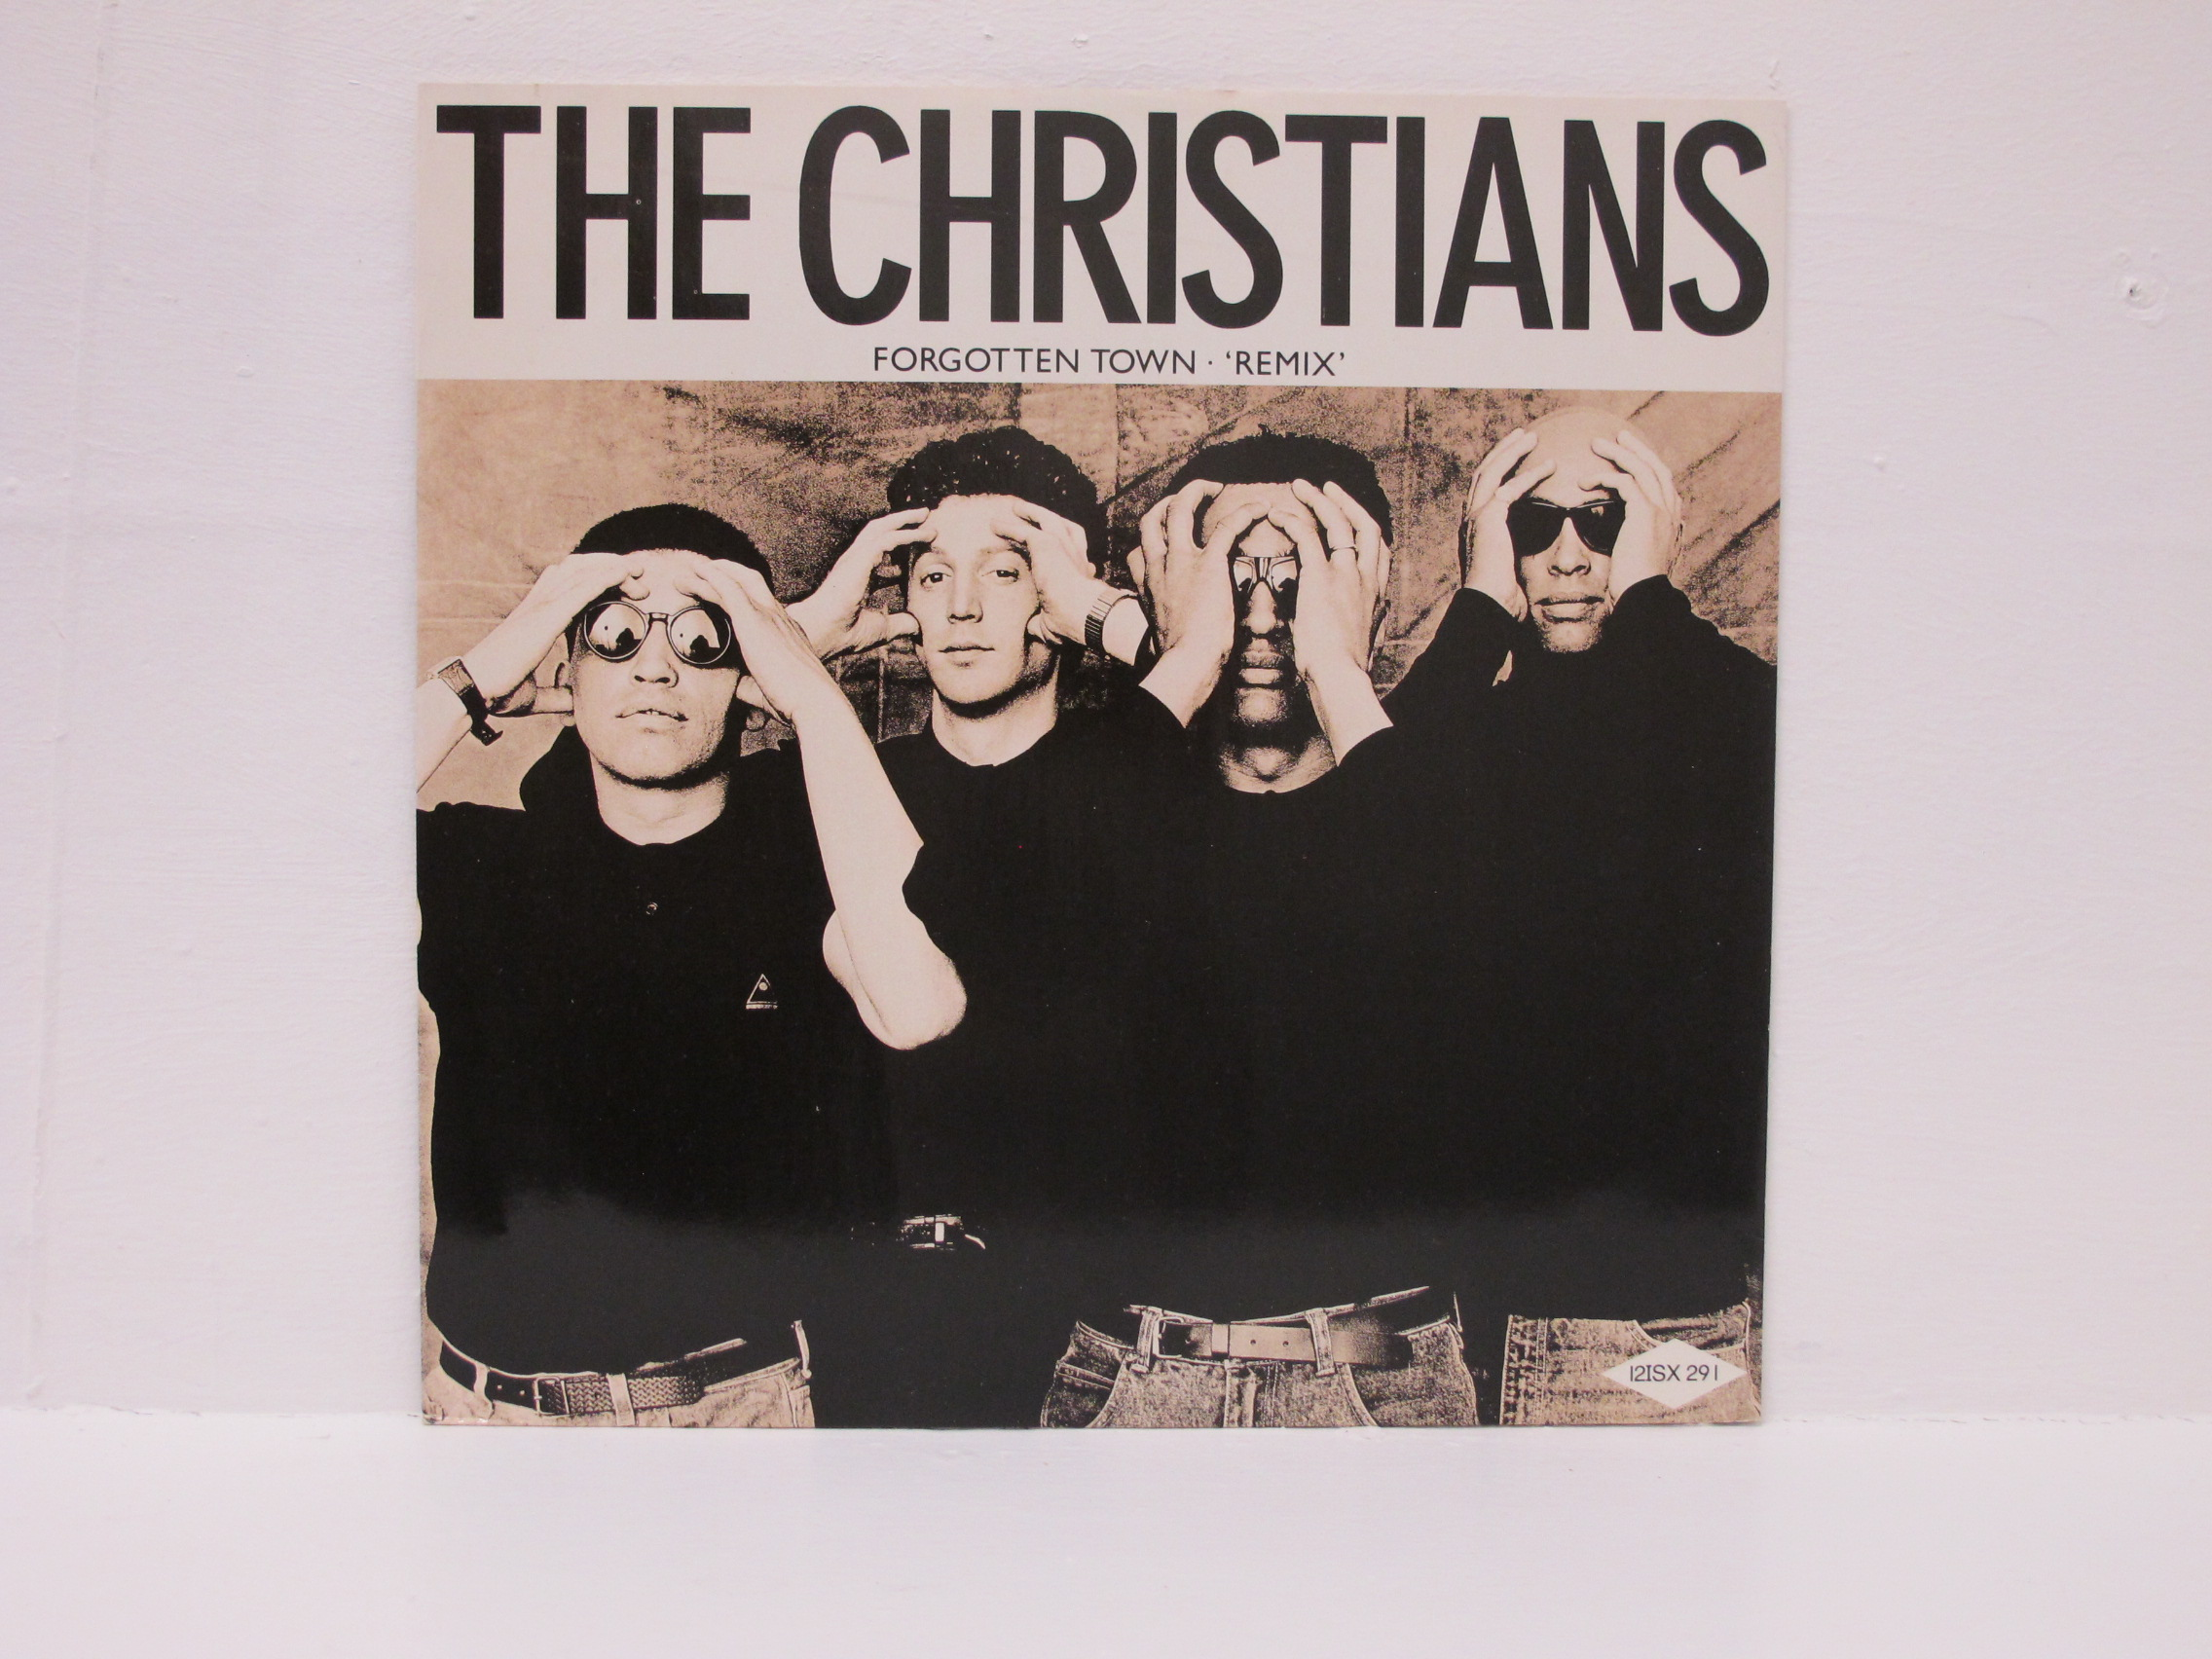 The Christians - Forgotten Town remix